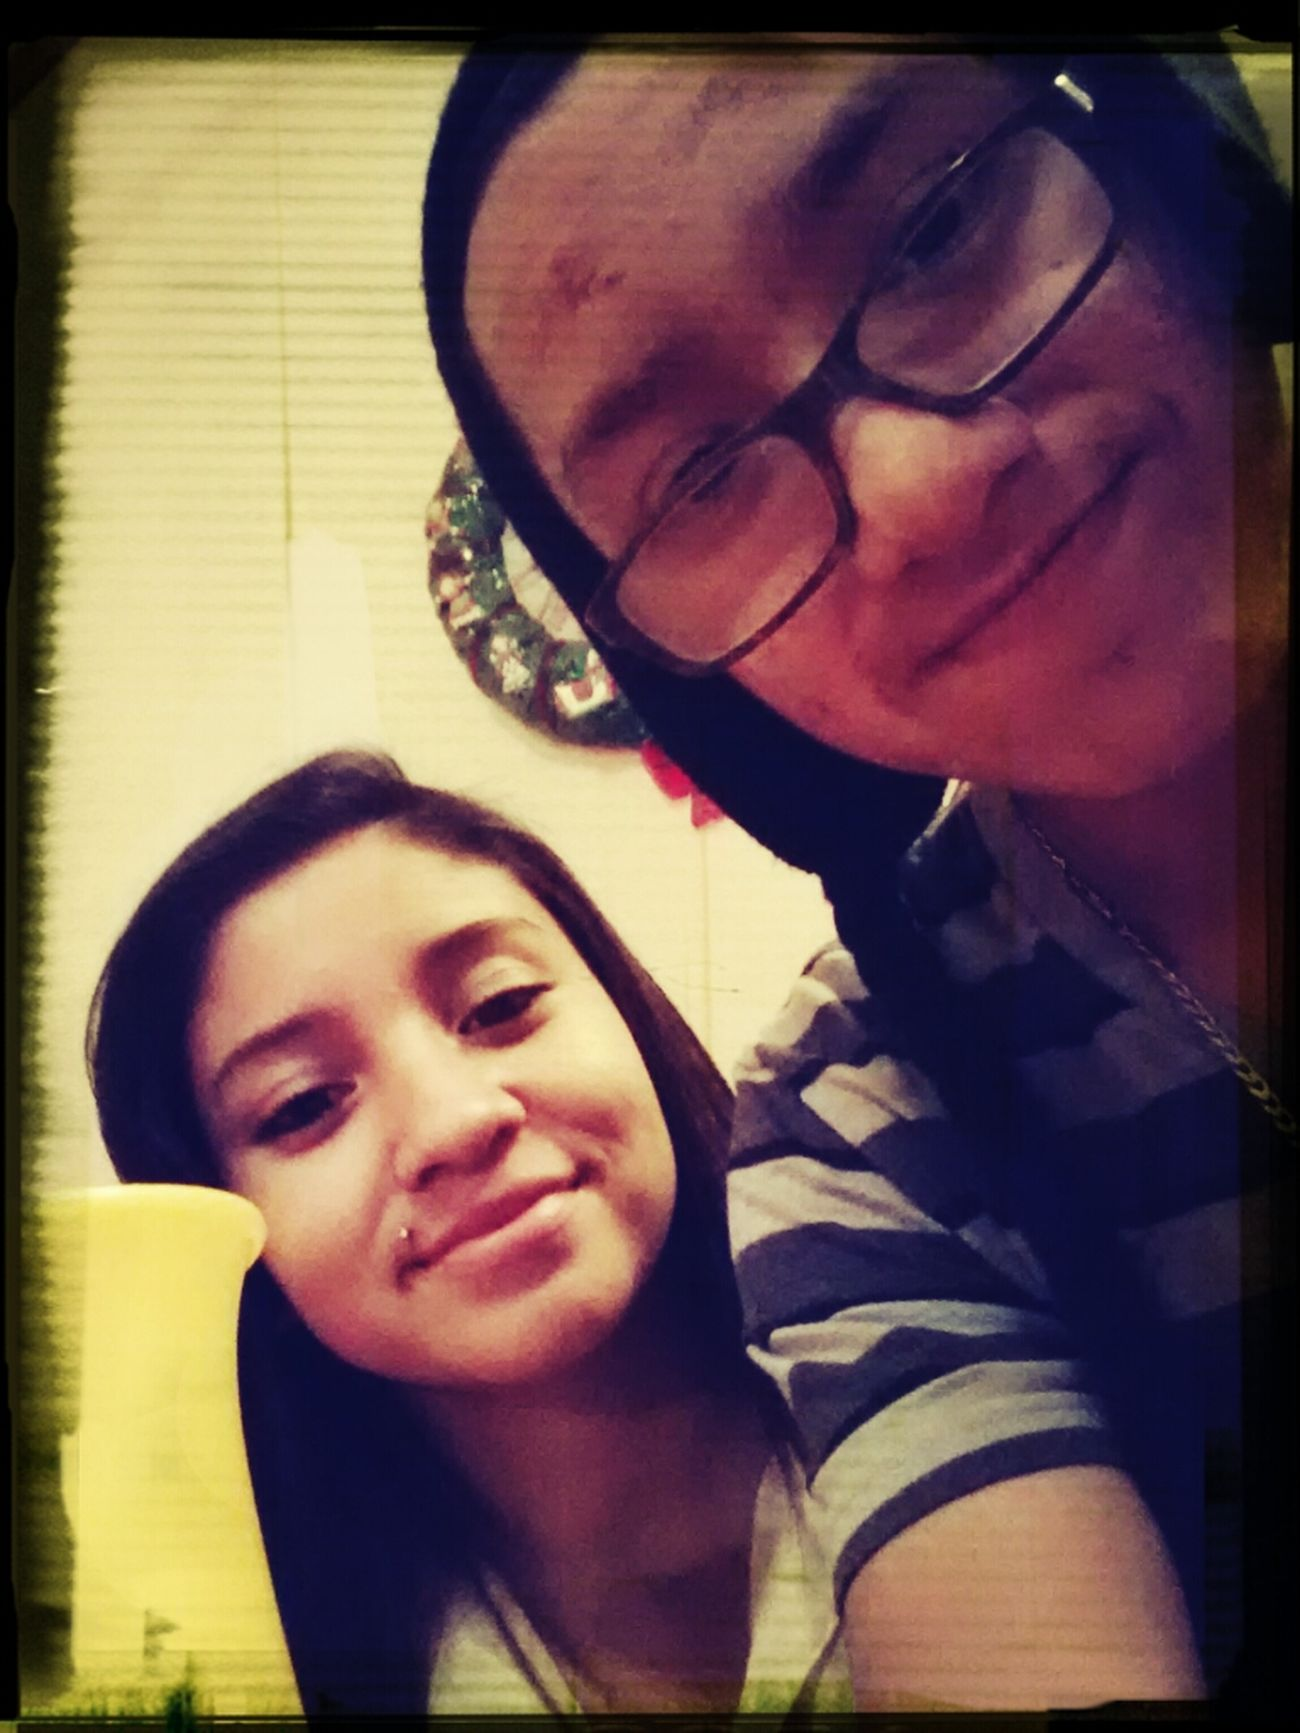 Me And My Bestfriend ♡